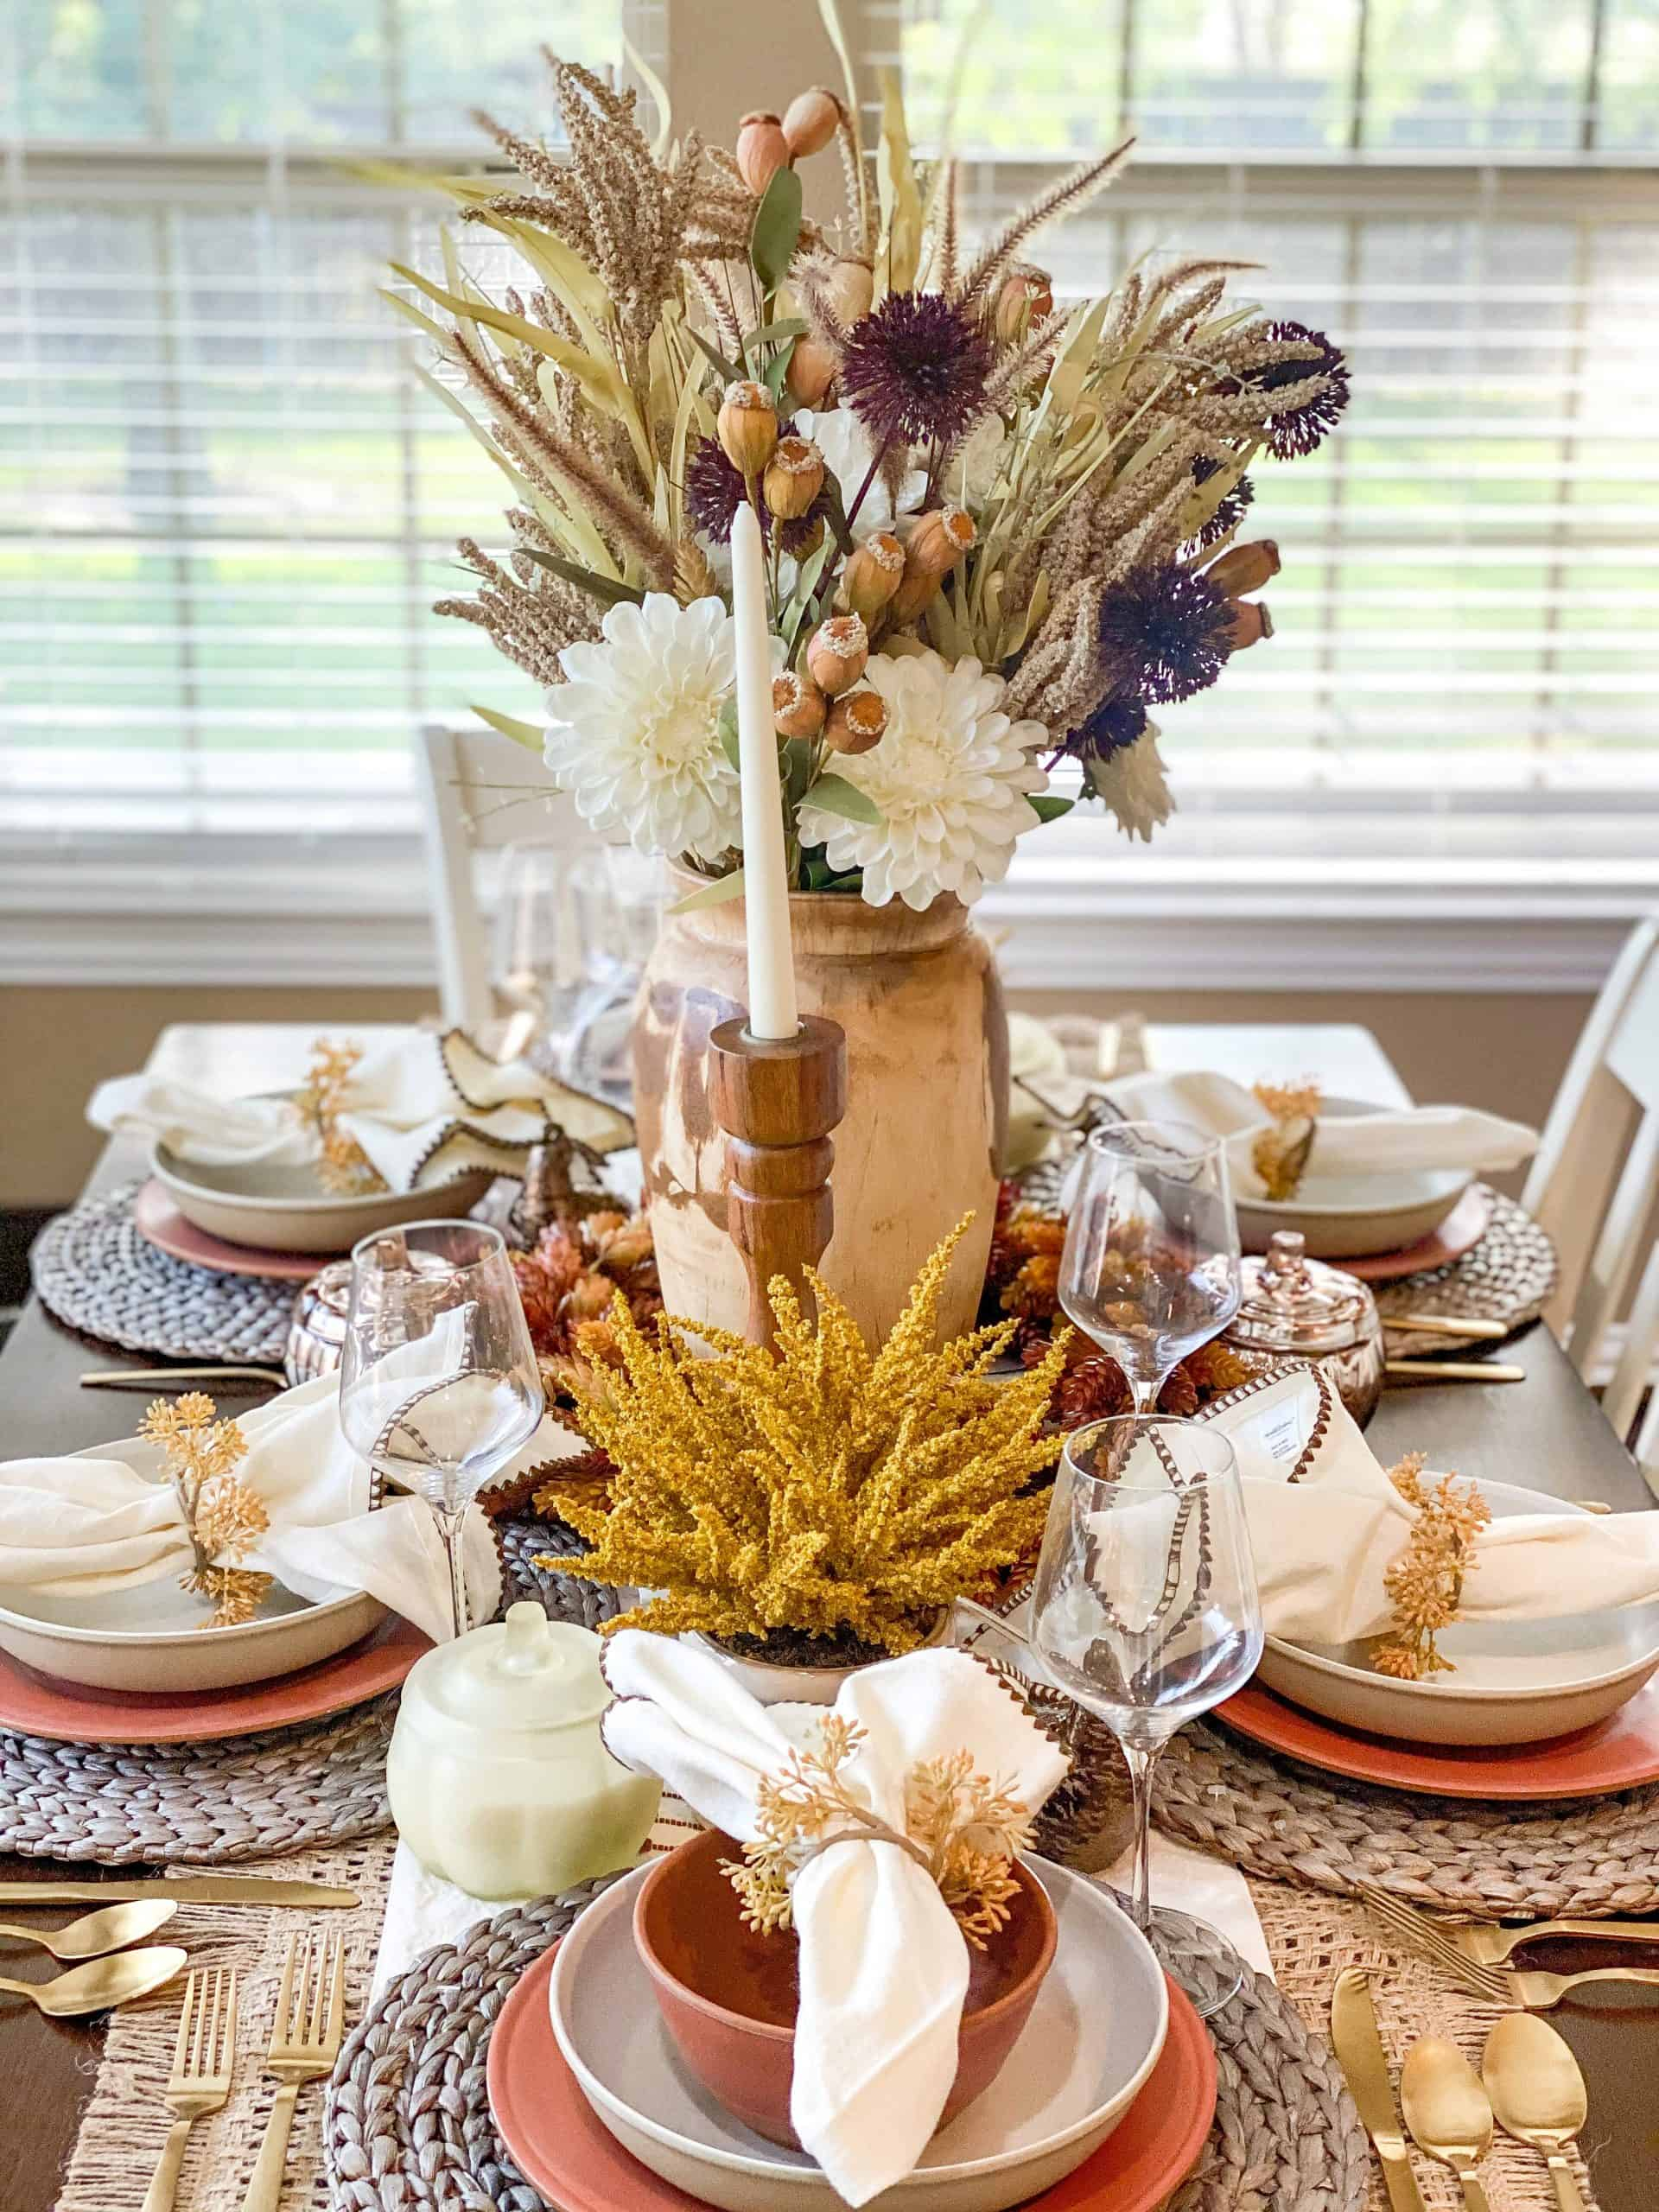 Fall Table Decor by popular Houston life and style blog, Glamorous Versatility: image of a dining table decorate with a Target table runner, straw place mats, linen napkins, wooden candle stick holders, white candle sticks, gold flatware, wooden vase, dried flowers, faux flowers, ceramic plates, ceramic bowls, and wine glasses.